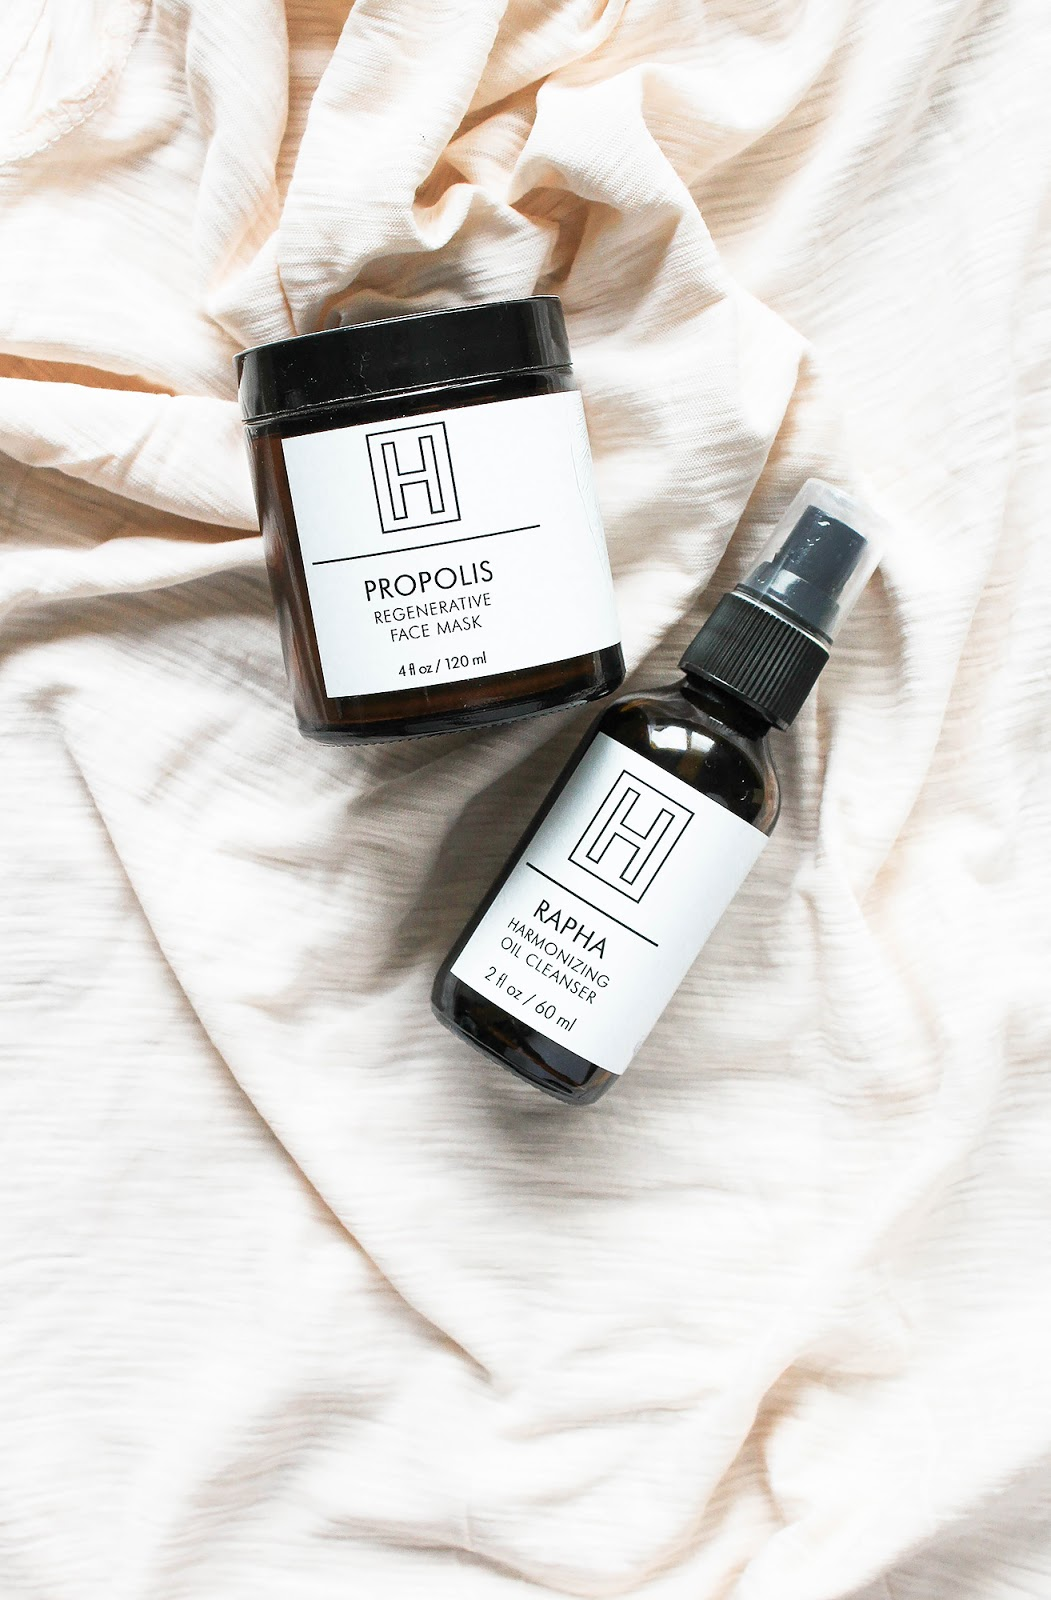 H IS FOR LOVE Rapha Harmonizing Oil Cleanser and Propolis Regenerative Face Mask. Vegan, organic. So Natural Beauty.